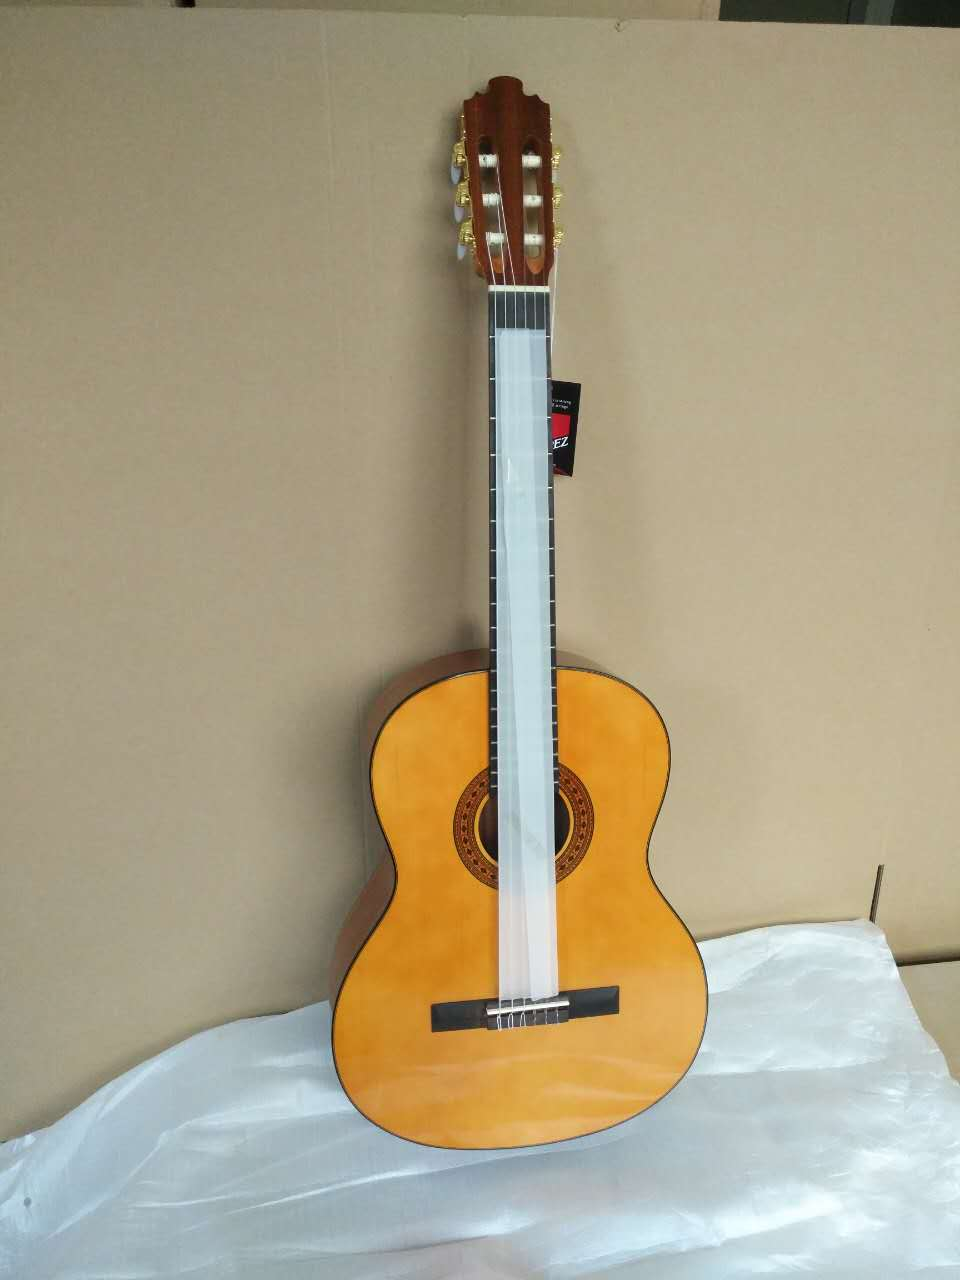 36 39 inch guitar ,Acoustic Classical Spanish guitars With Spruce Top/Mahogany Body,classical guitar with Nylon string enlarge